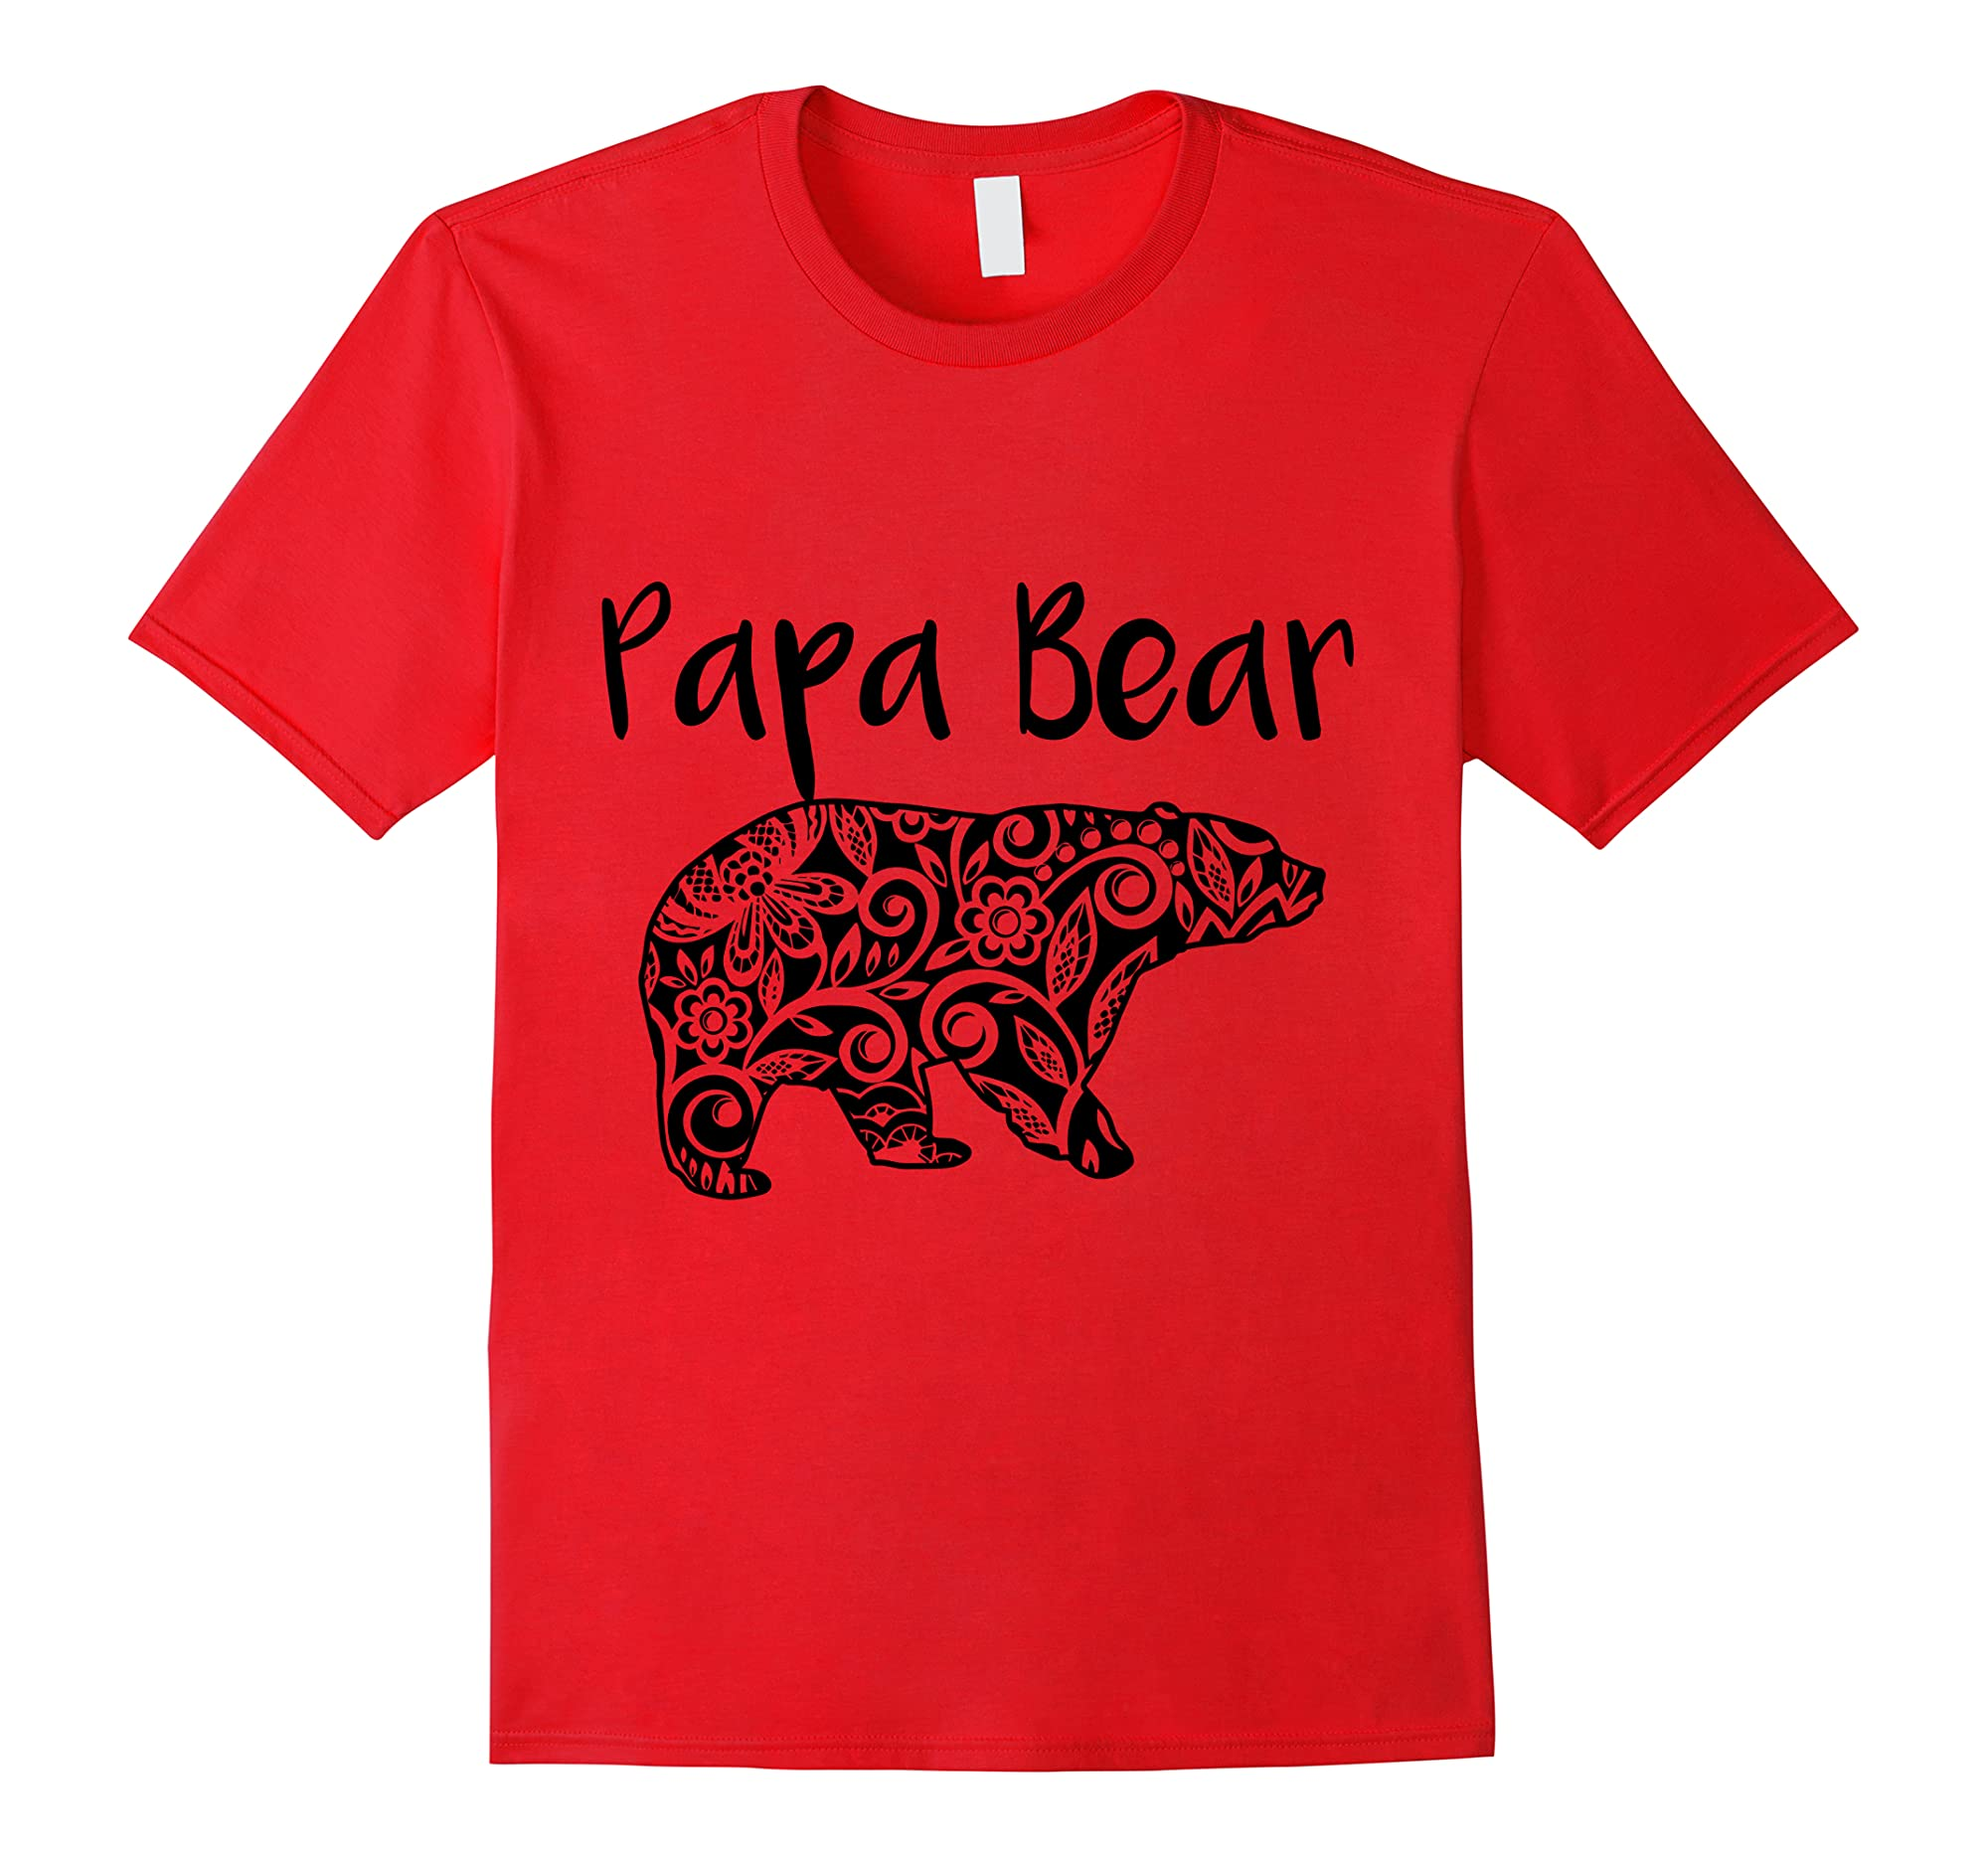 Fortuitous Dta Dta S Mama Papa Baby Bear Funny Family Matching Mother Day Ts Shirts Red